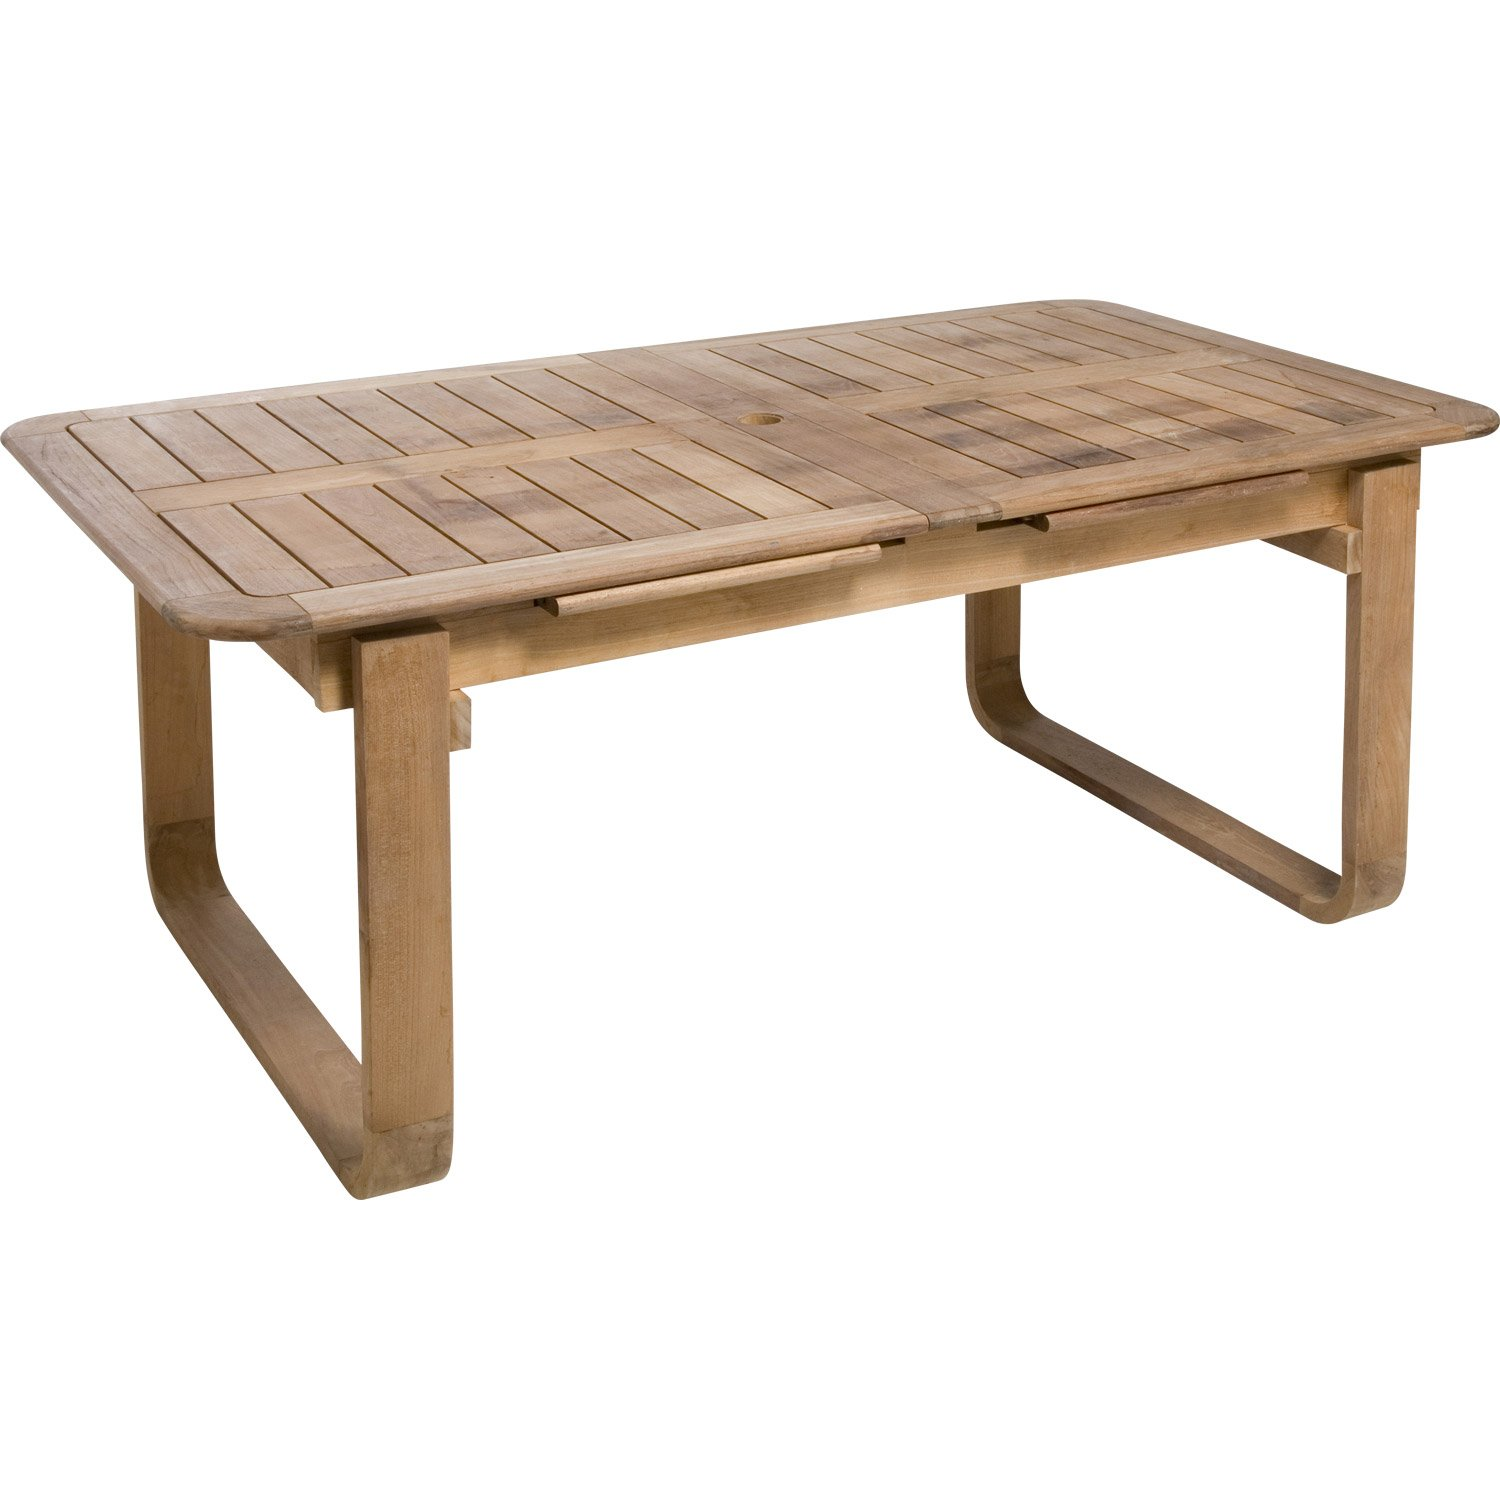 Table Bois Terrasse Table De Terrasse Bois L 39habis